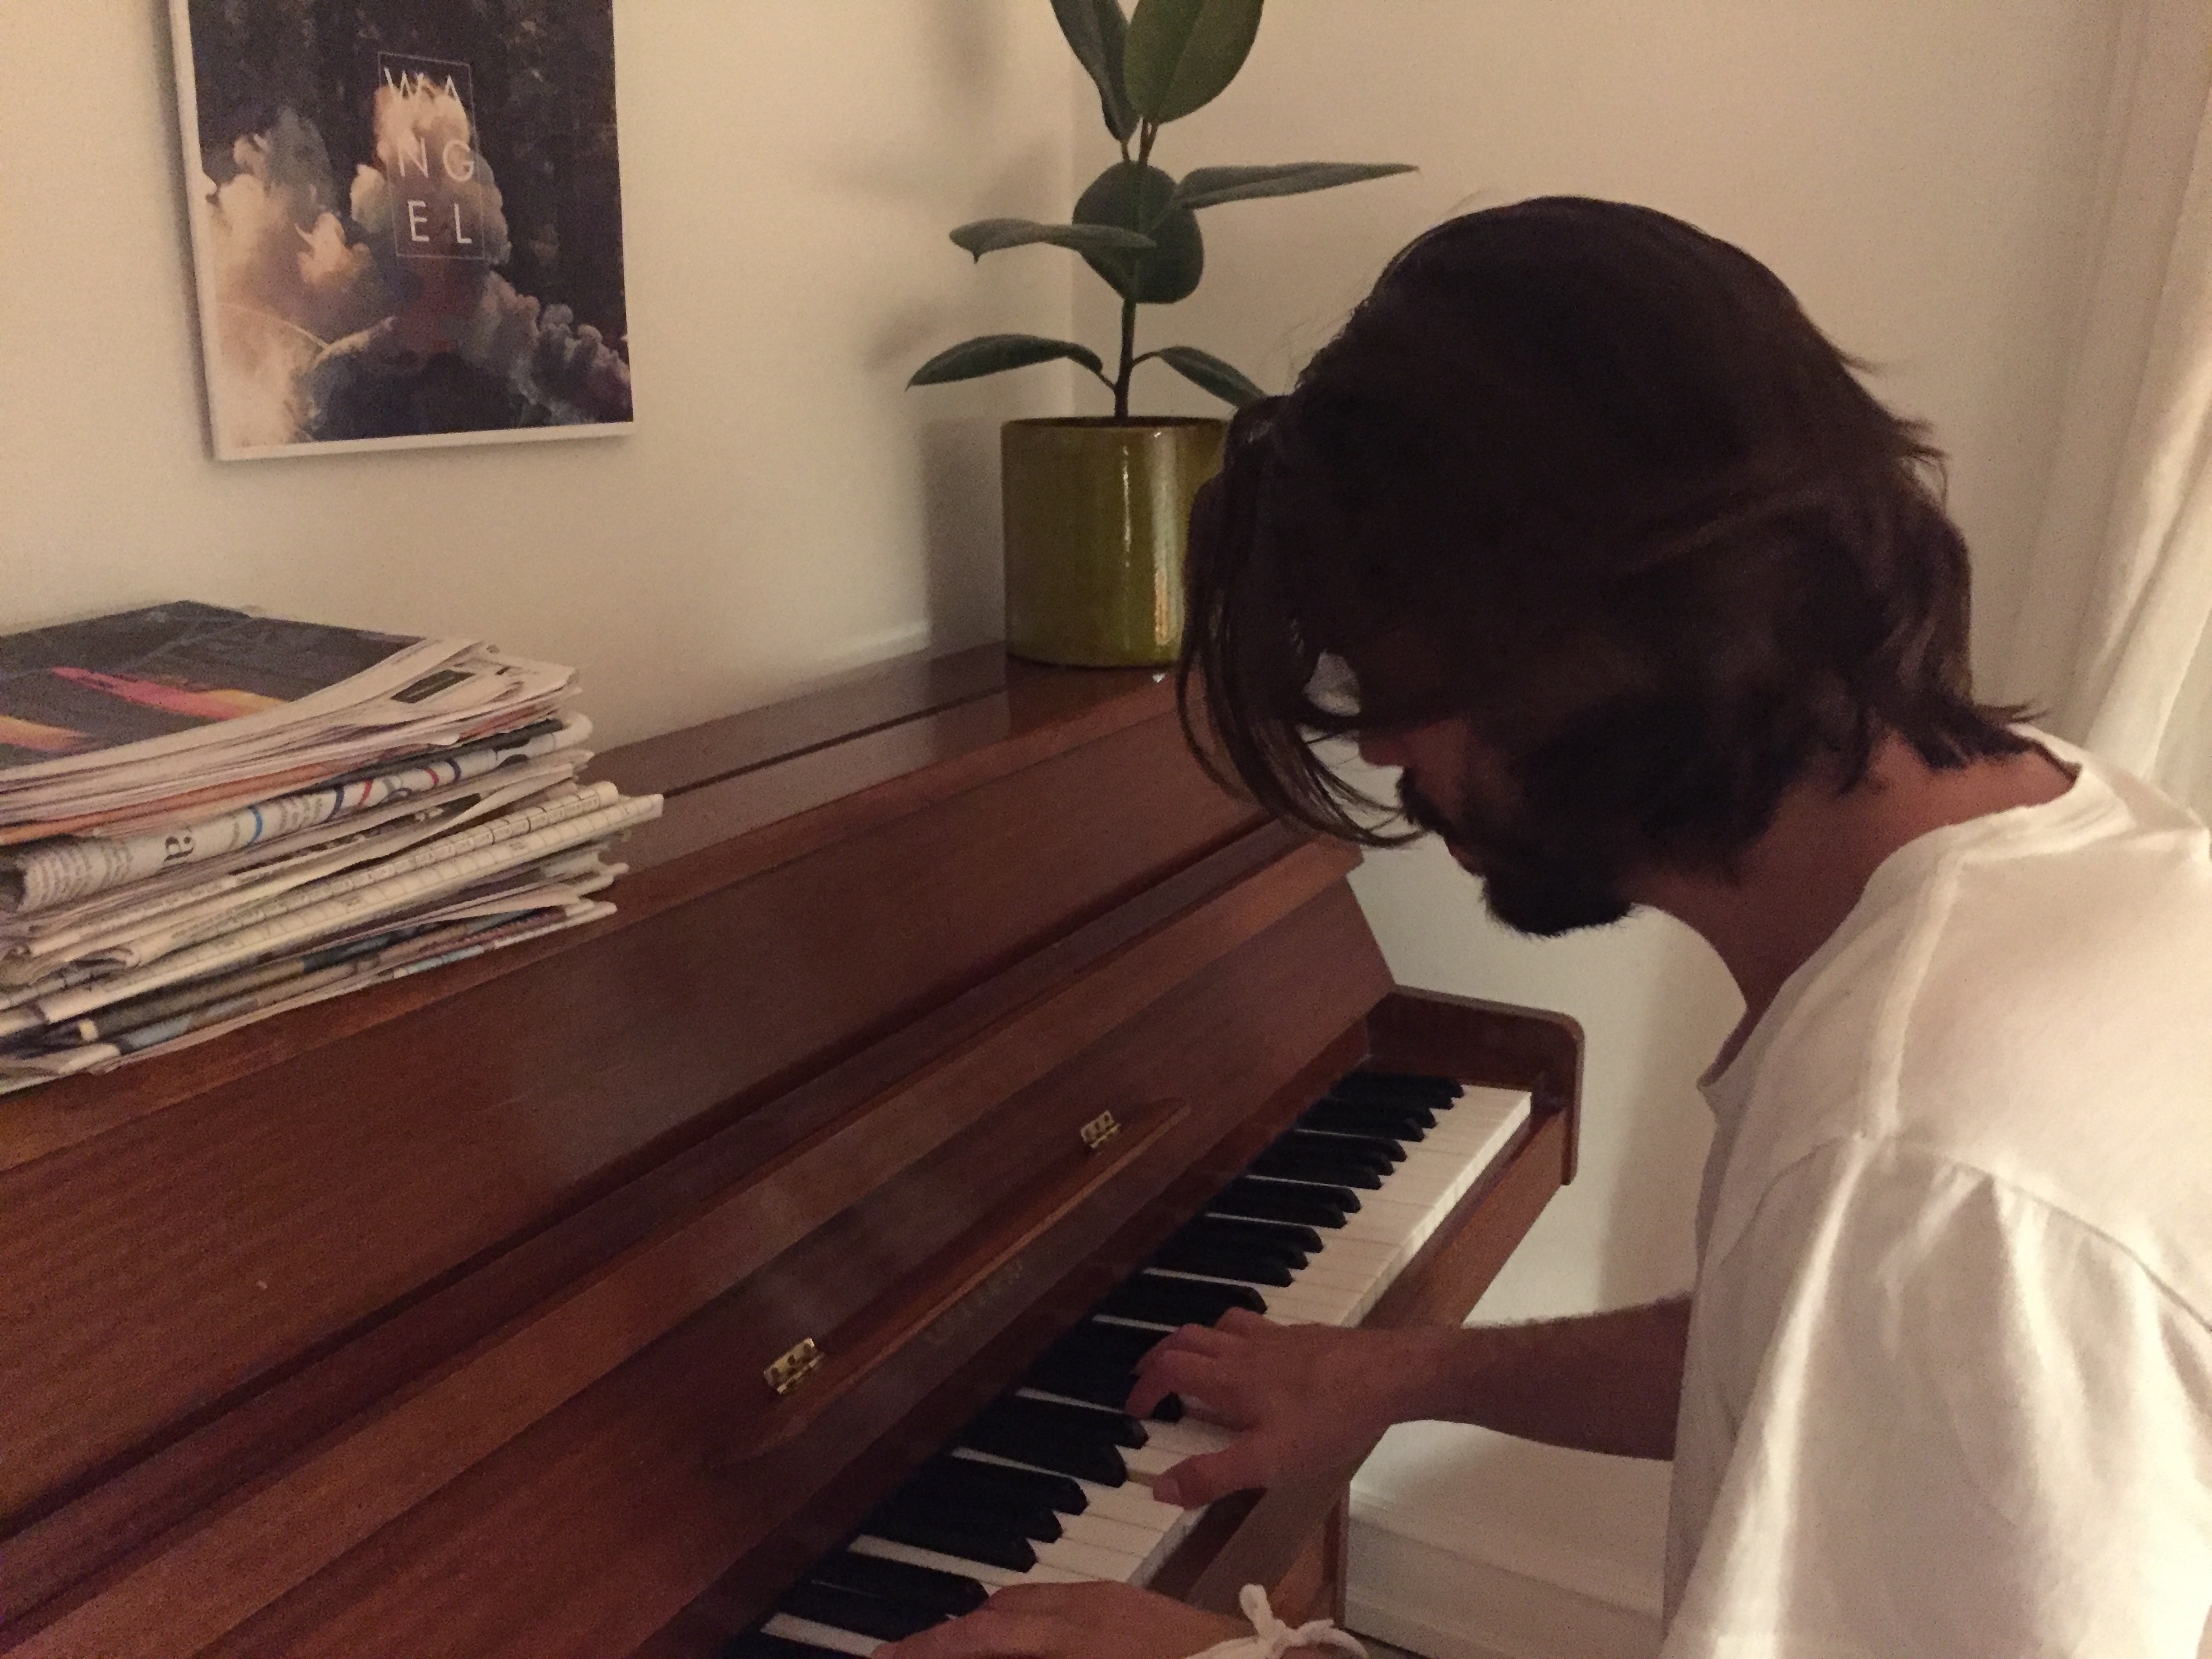 8-Playing-my-piano.-I-have-written-a-couple-of-the-songs-from-the-new-album-on-the-piano